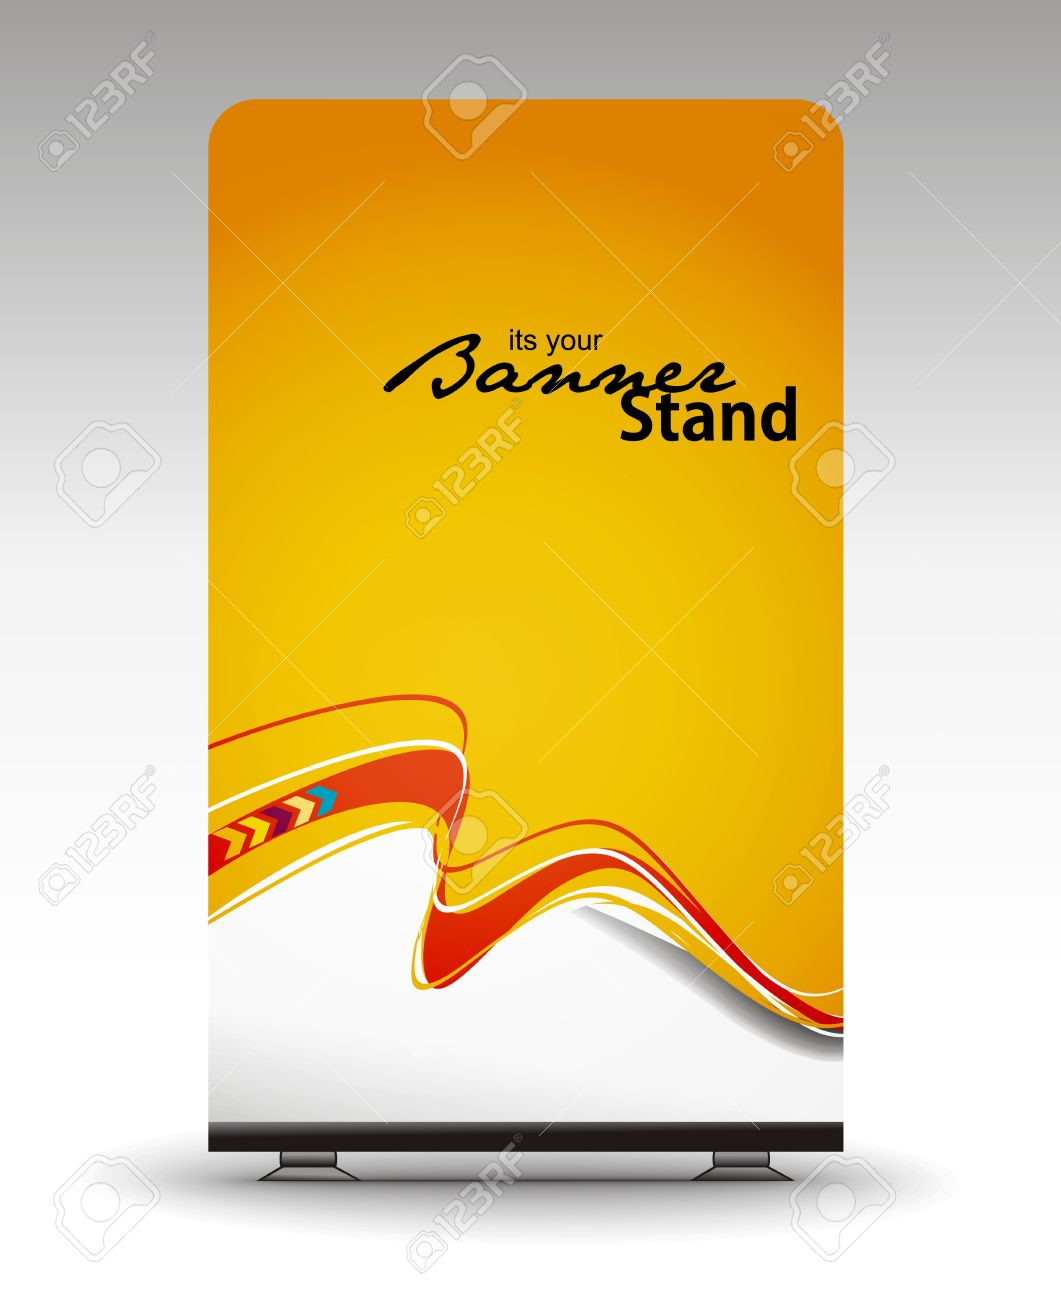 Design banner template - A Roll Up Display With Stand Banner Template Design Stock Vector 7554352